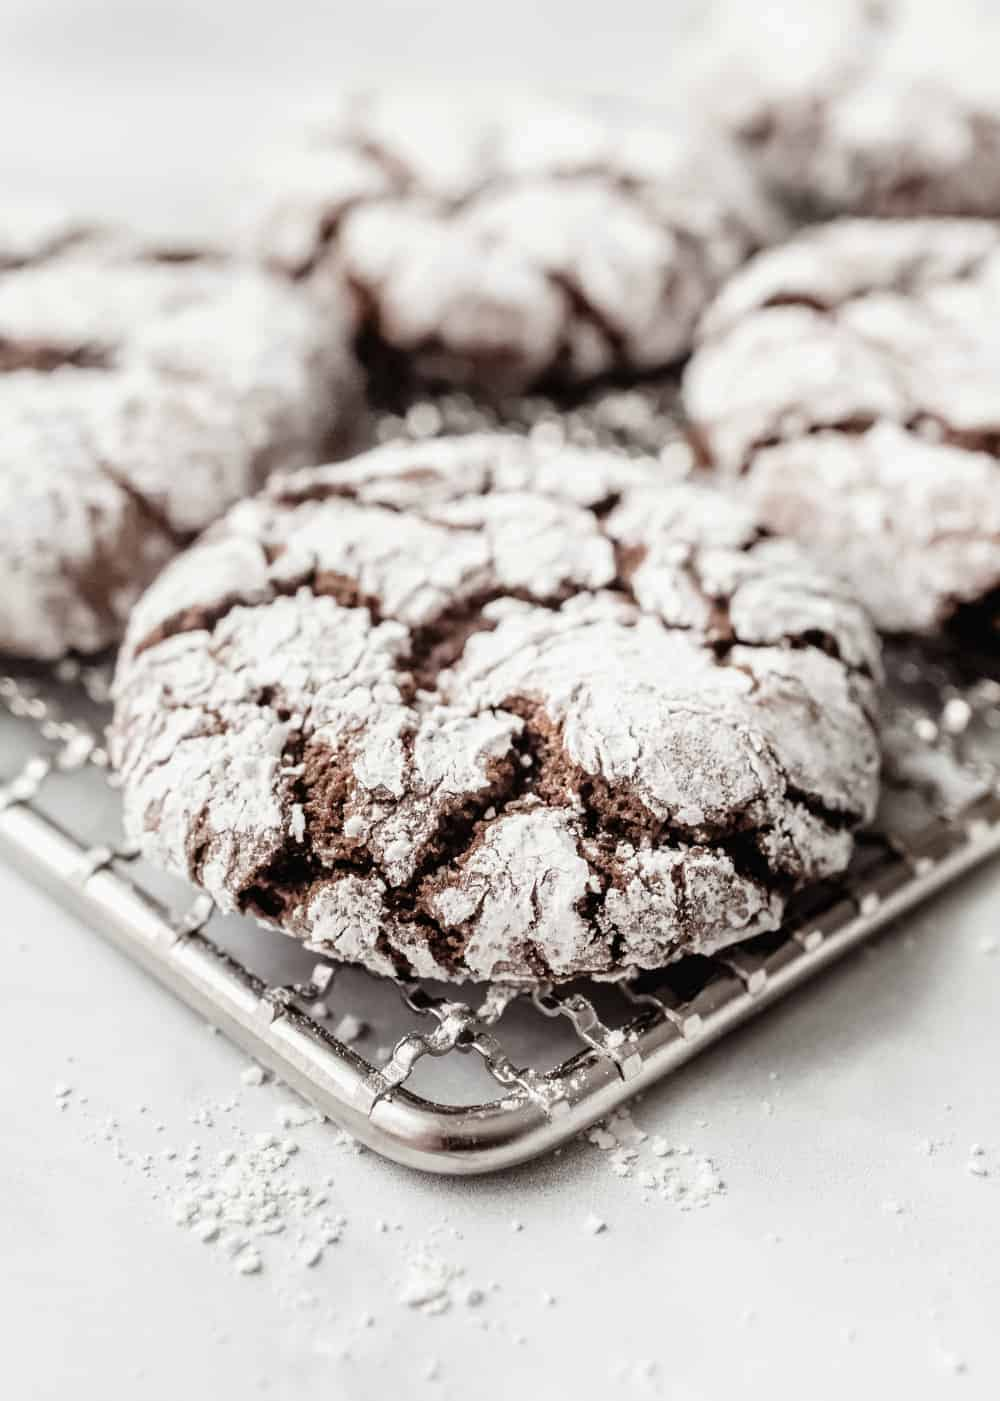 Close up view of a chocolate crinkle cookie on a cooling rack